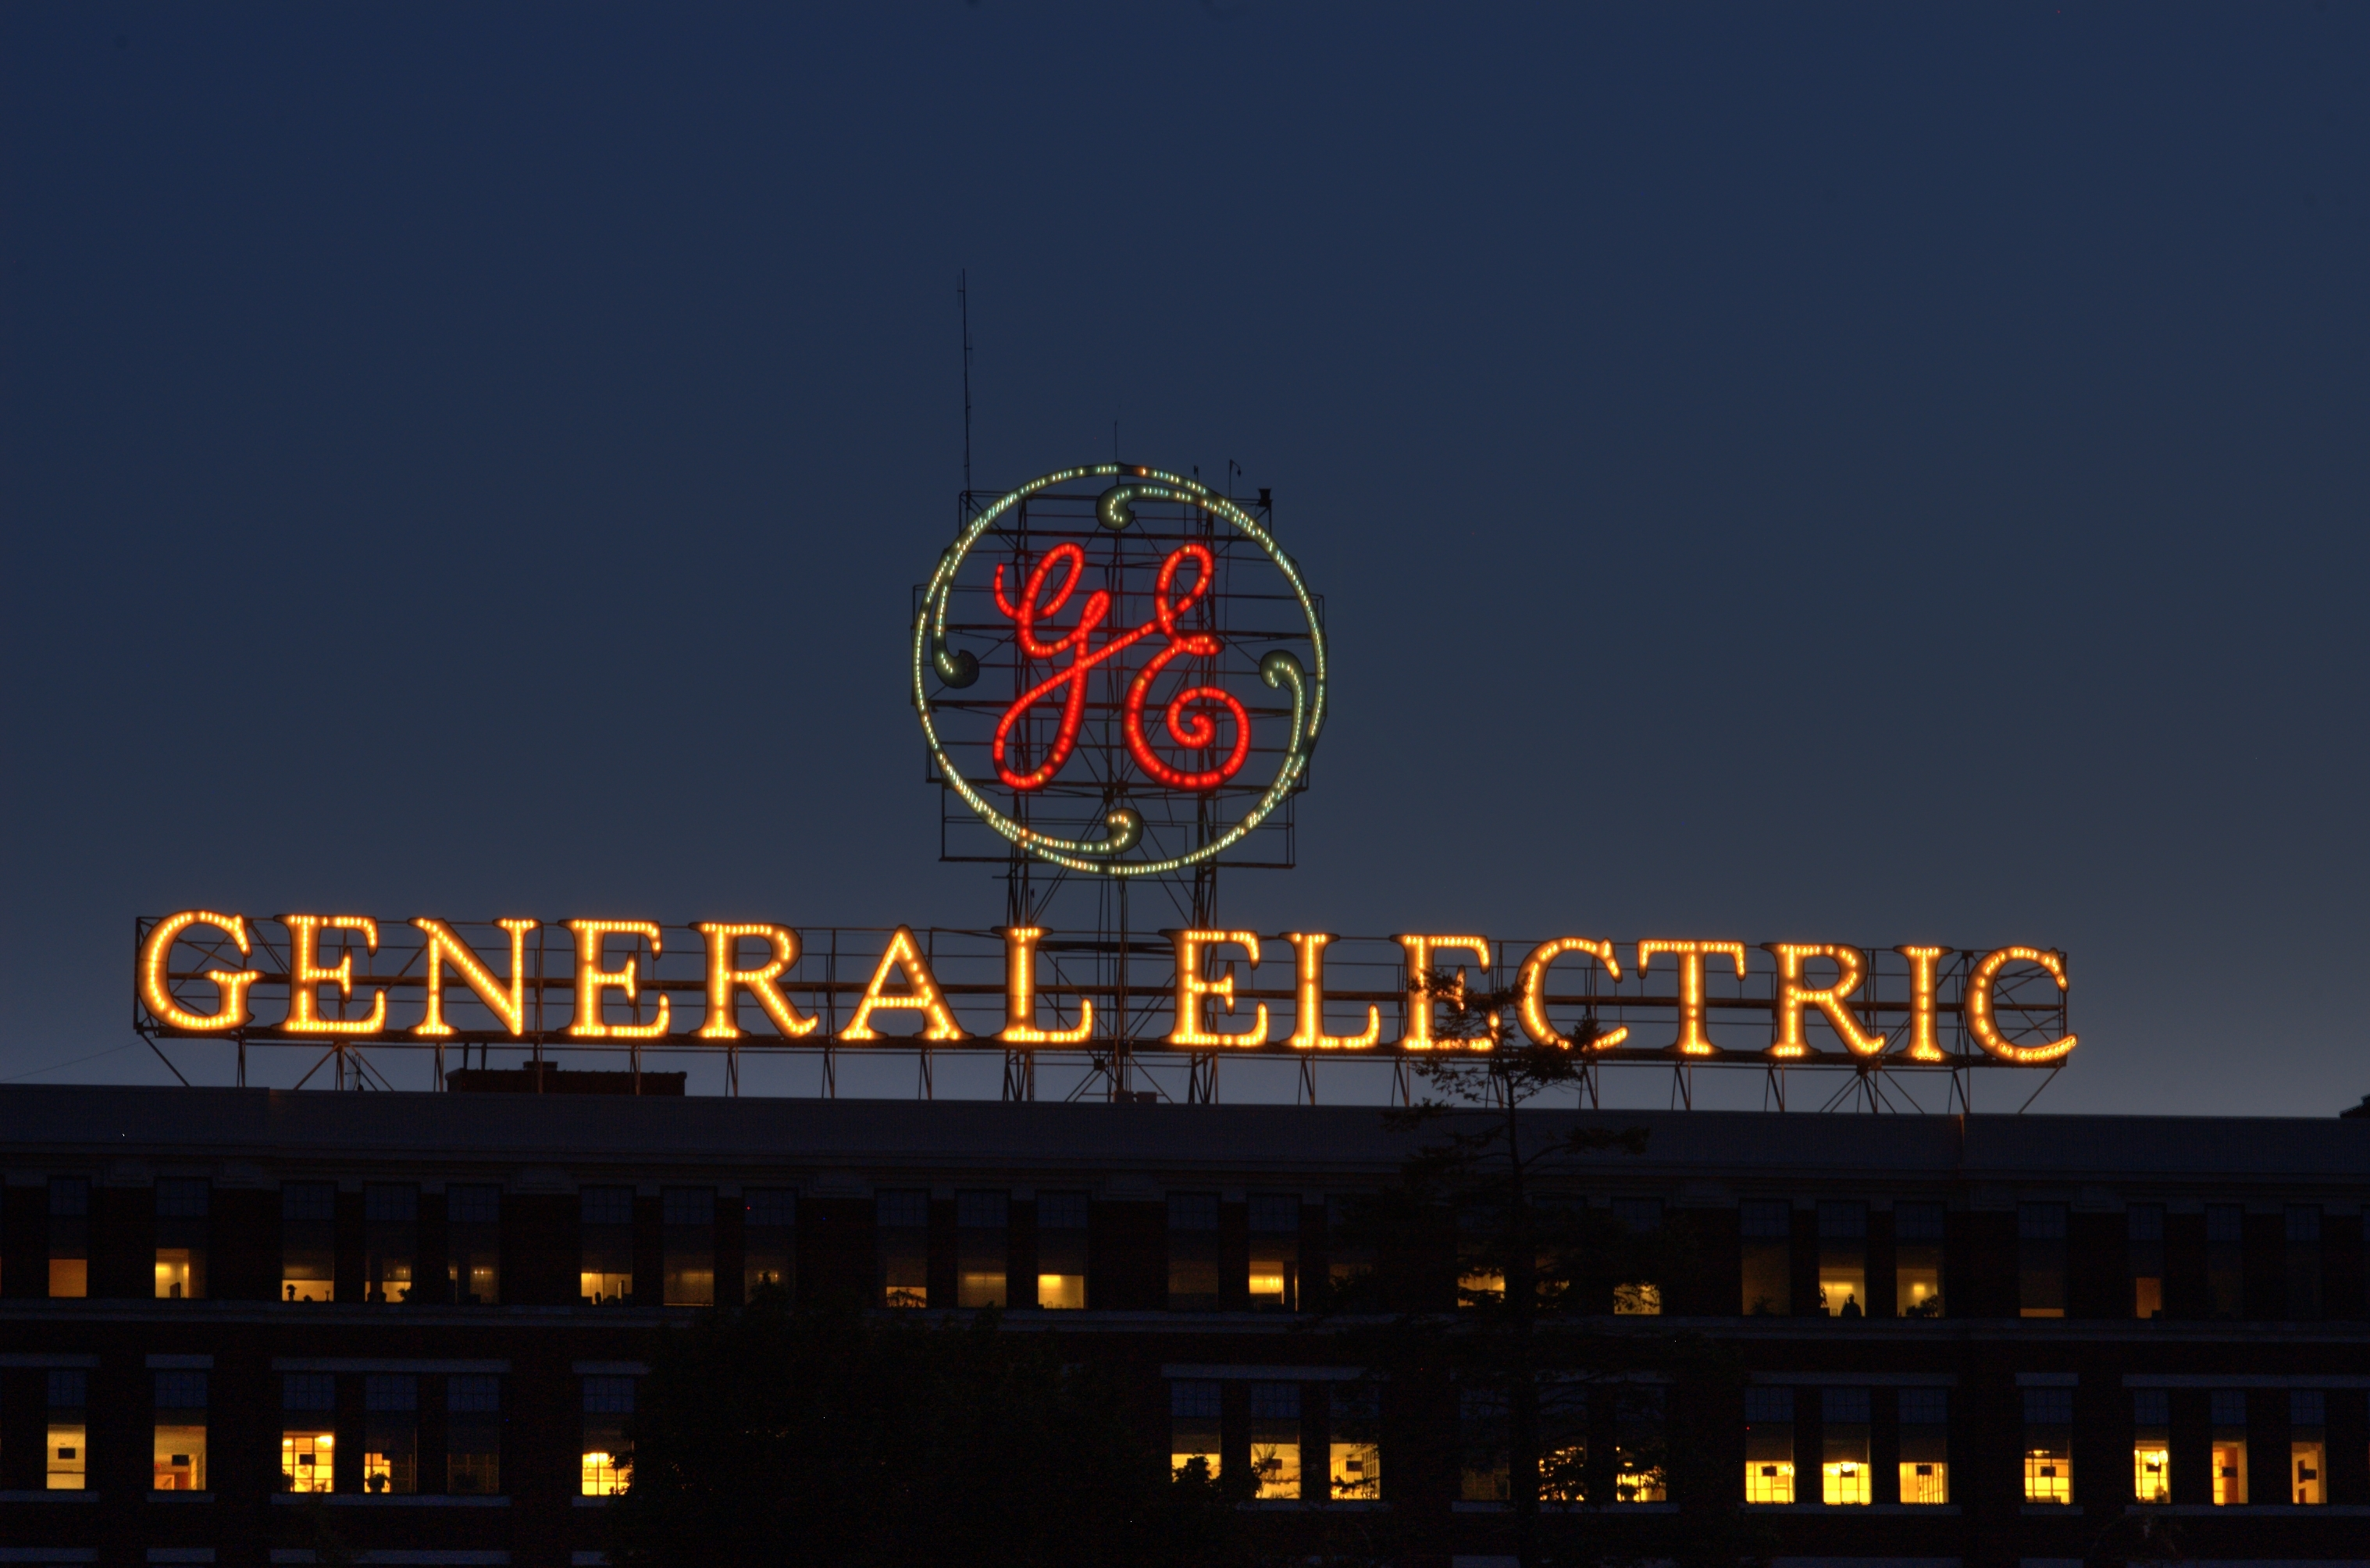 General Electric's Schenectady, NY headquarters.